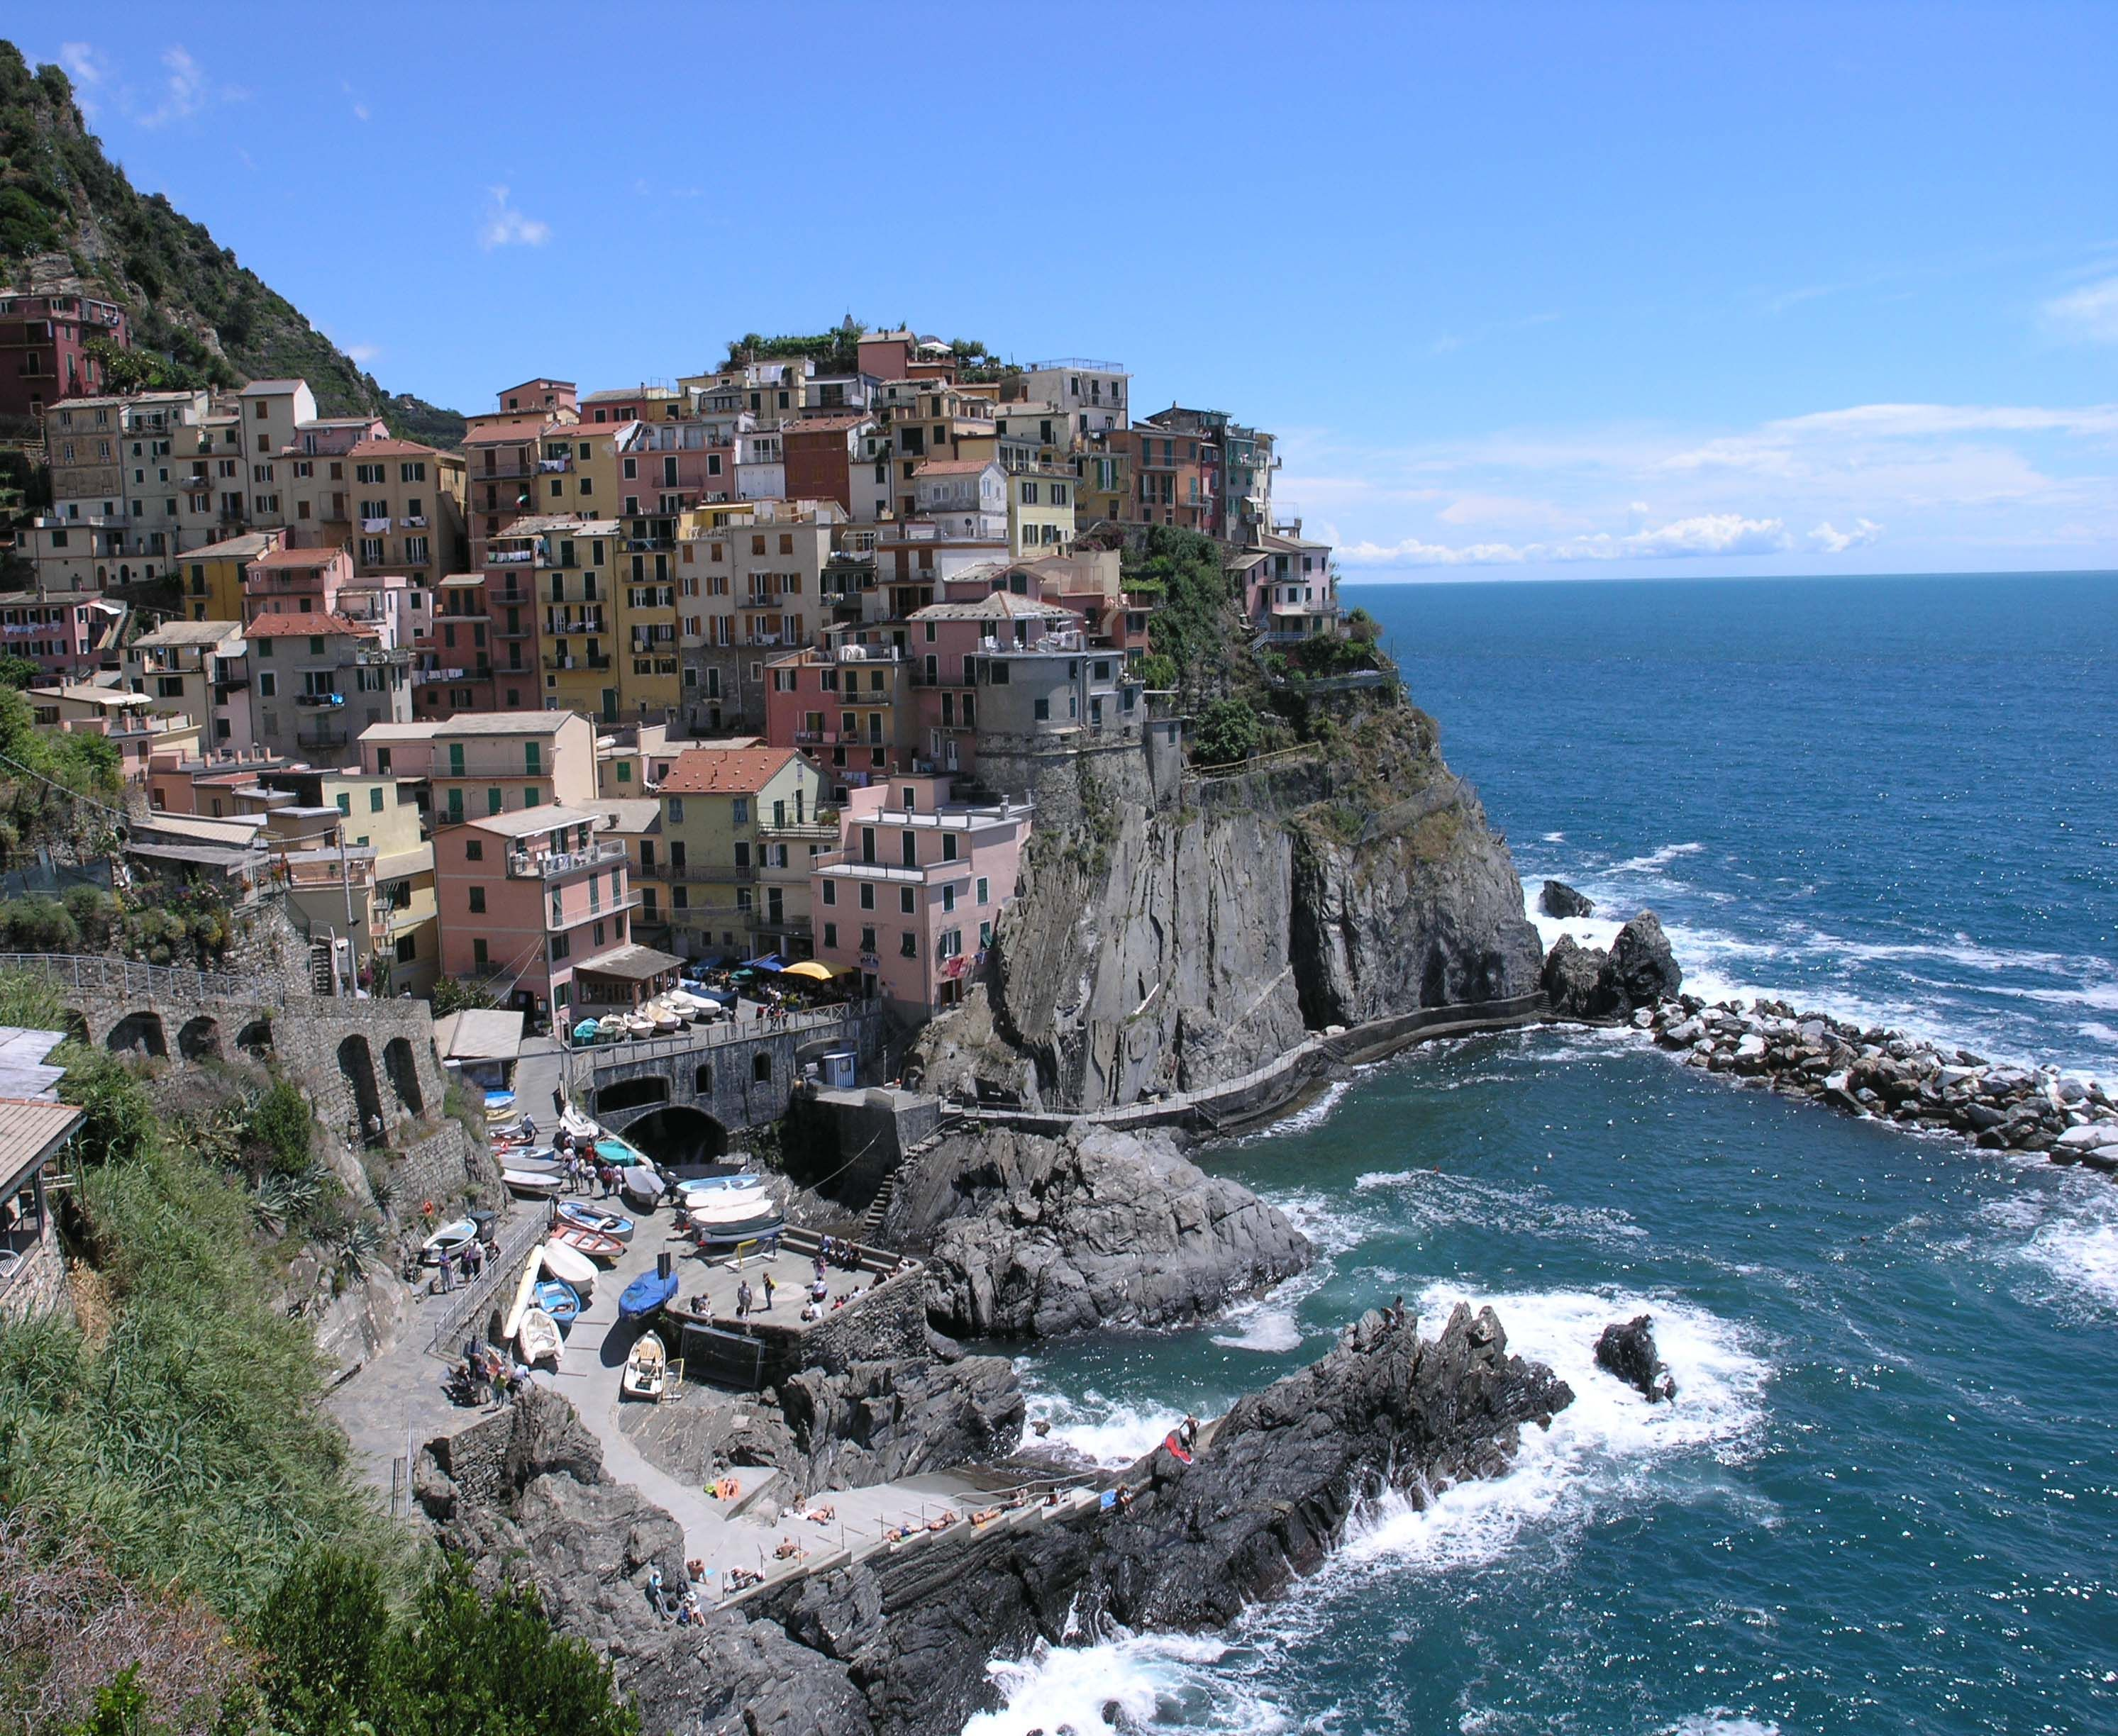 Manarola Cinque Terre Italy One Of The Best Times In My Life Luxury Hotelscinque